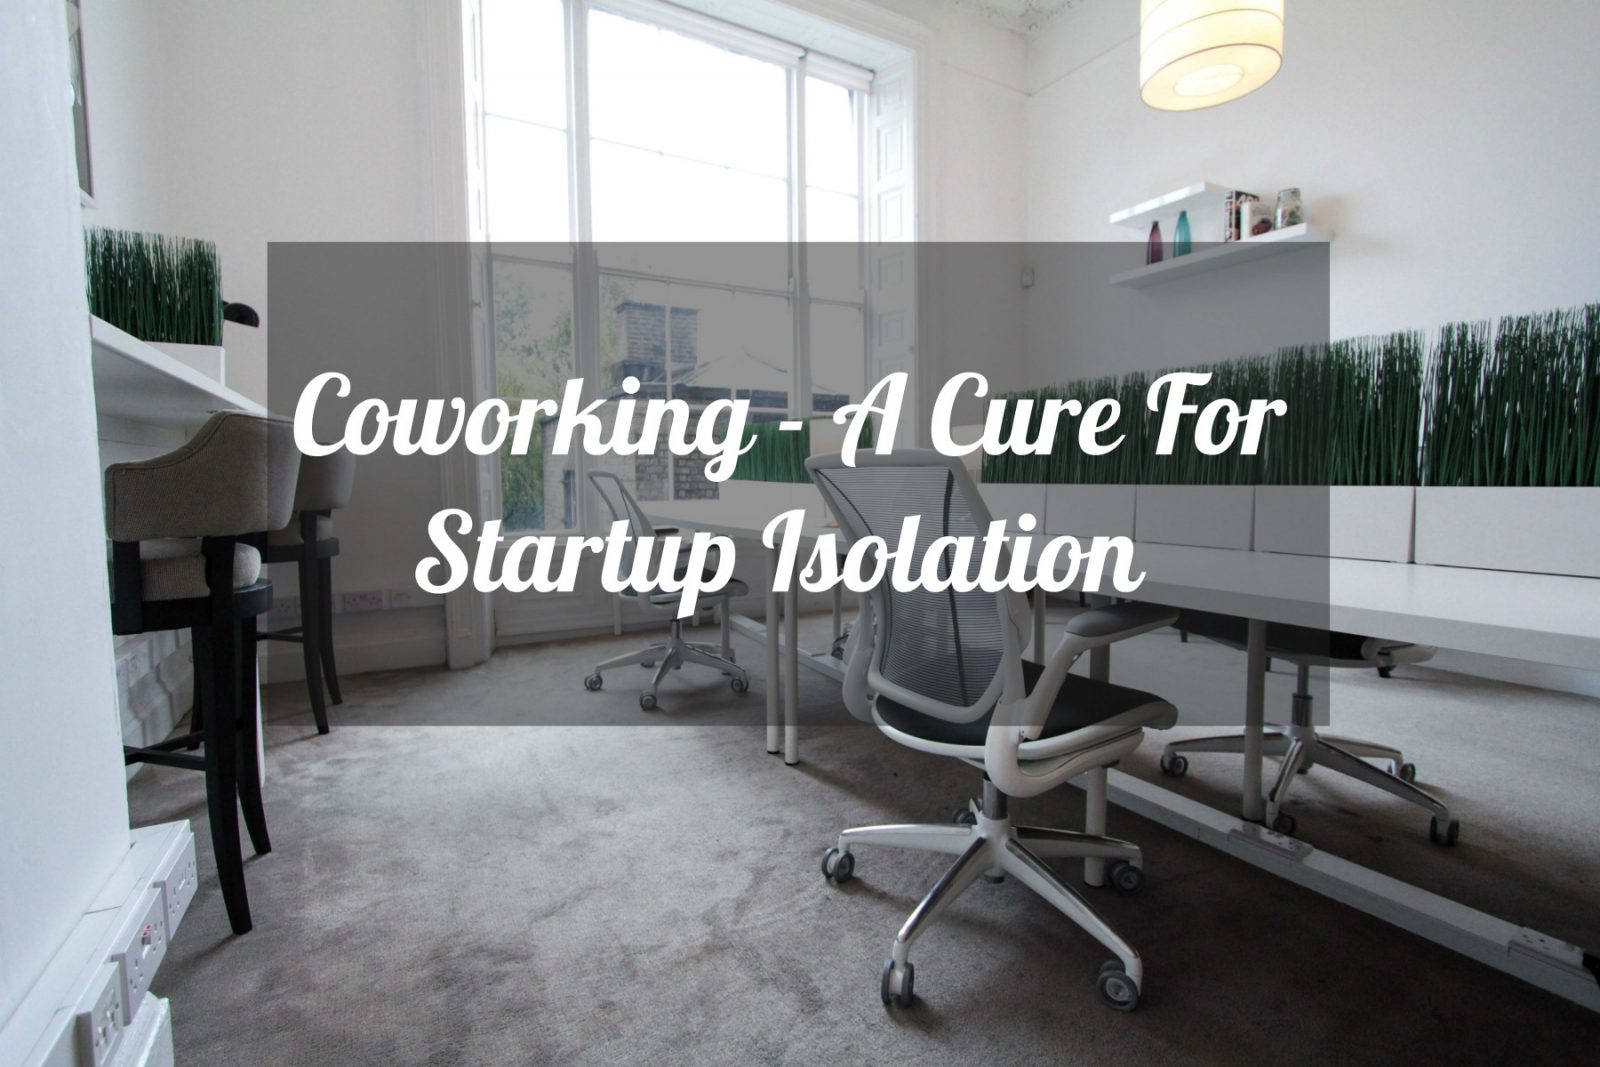 Coworking – A Cure For Startup Isolation